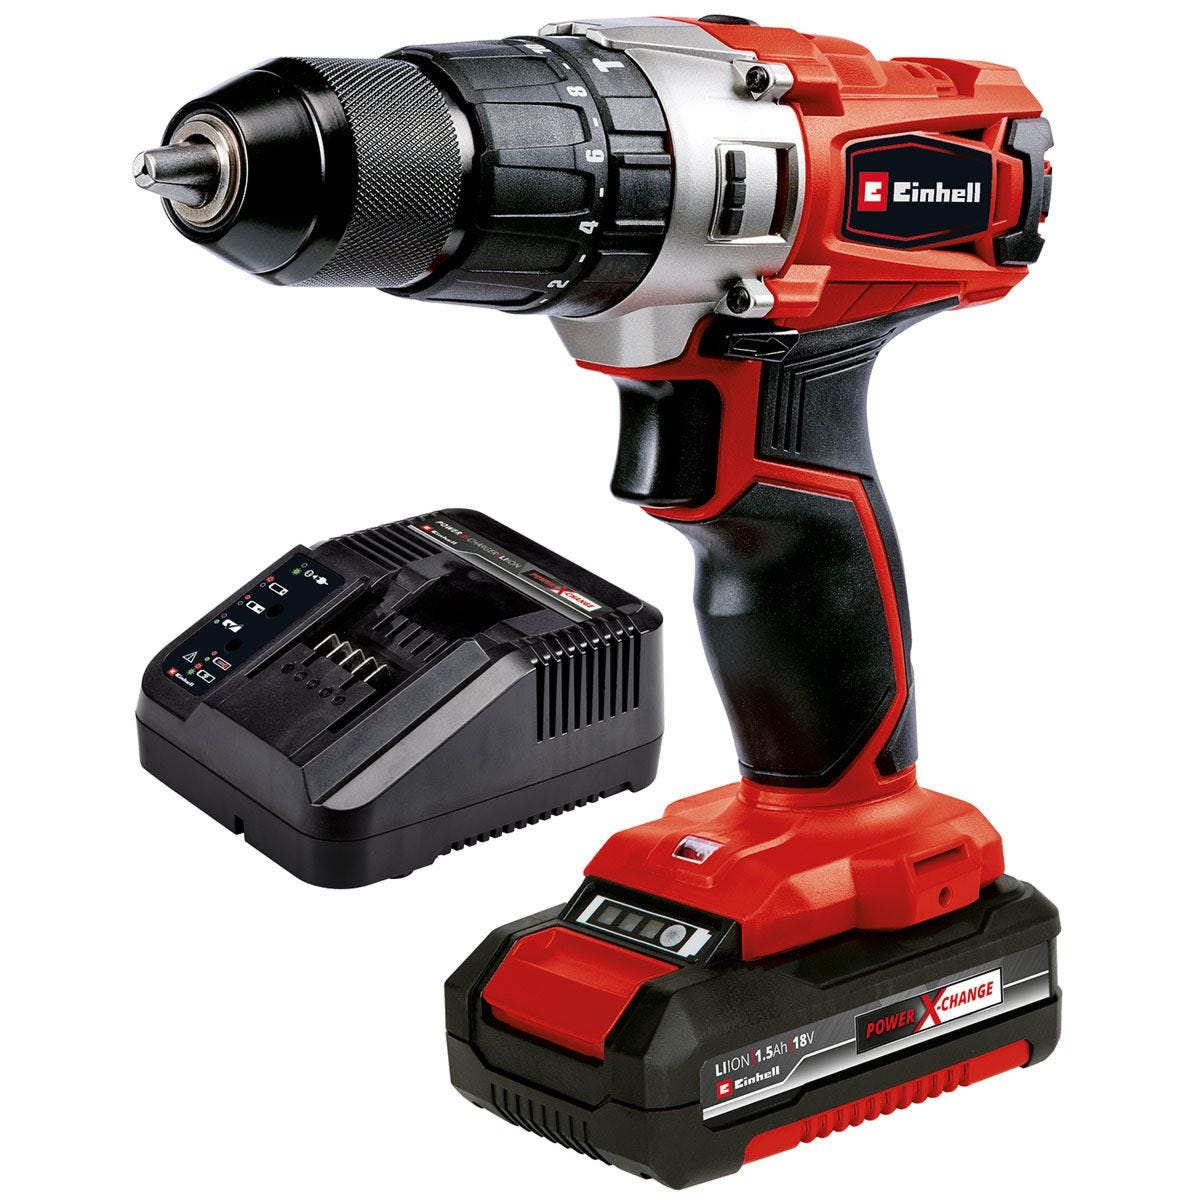 Einhell Power X-Change 18V Cordless Combi Drill with Carry Case and 1x 1.5Ah Battery